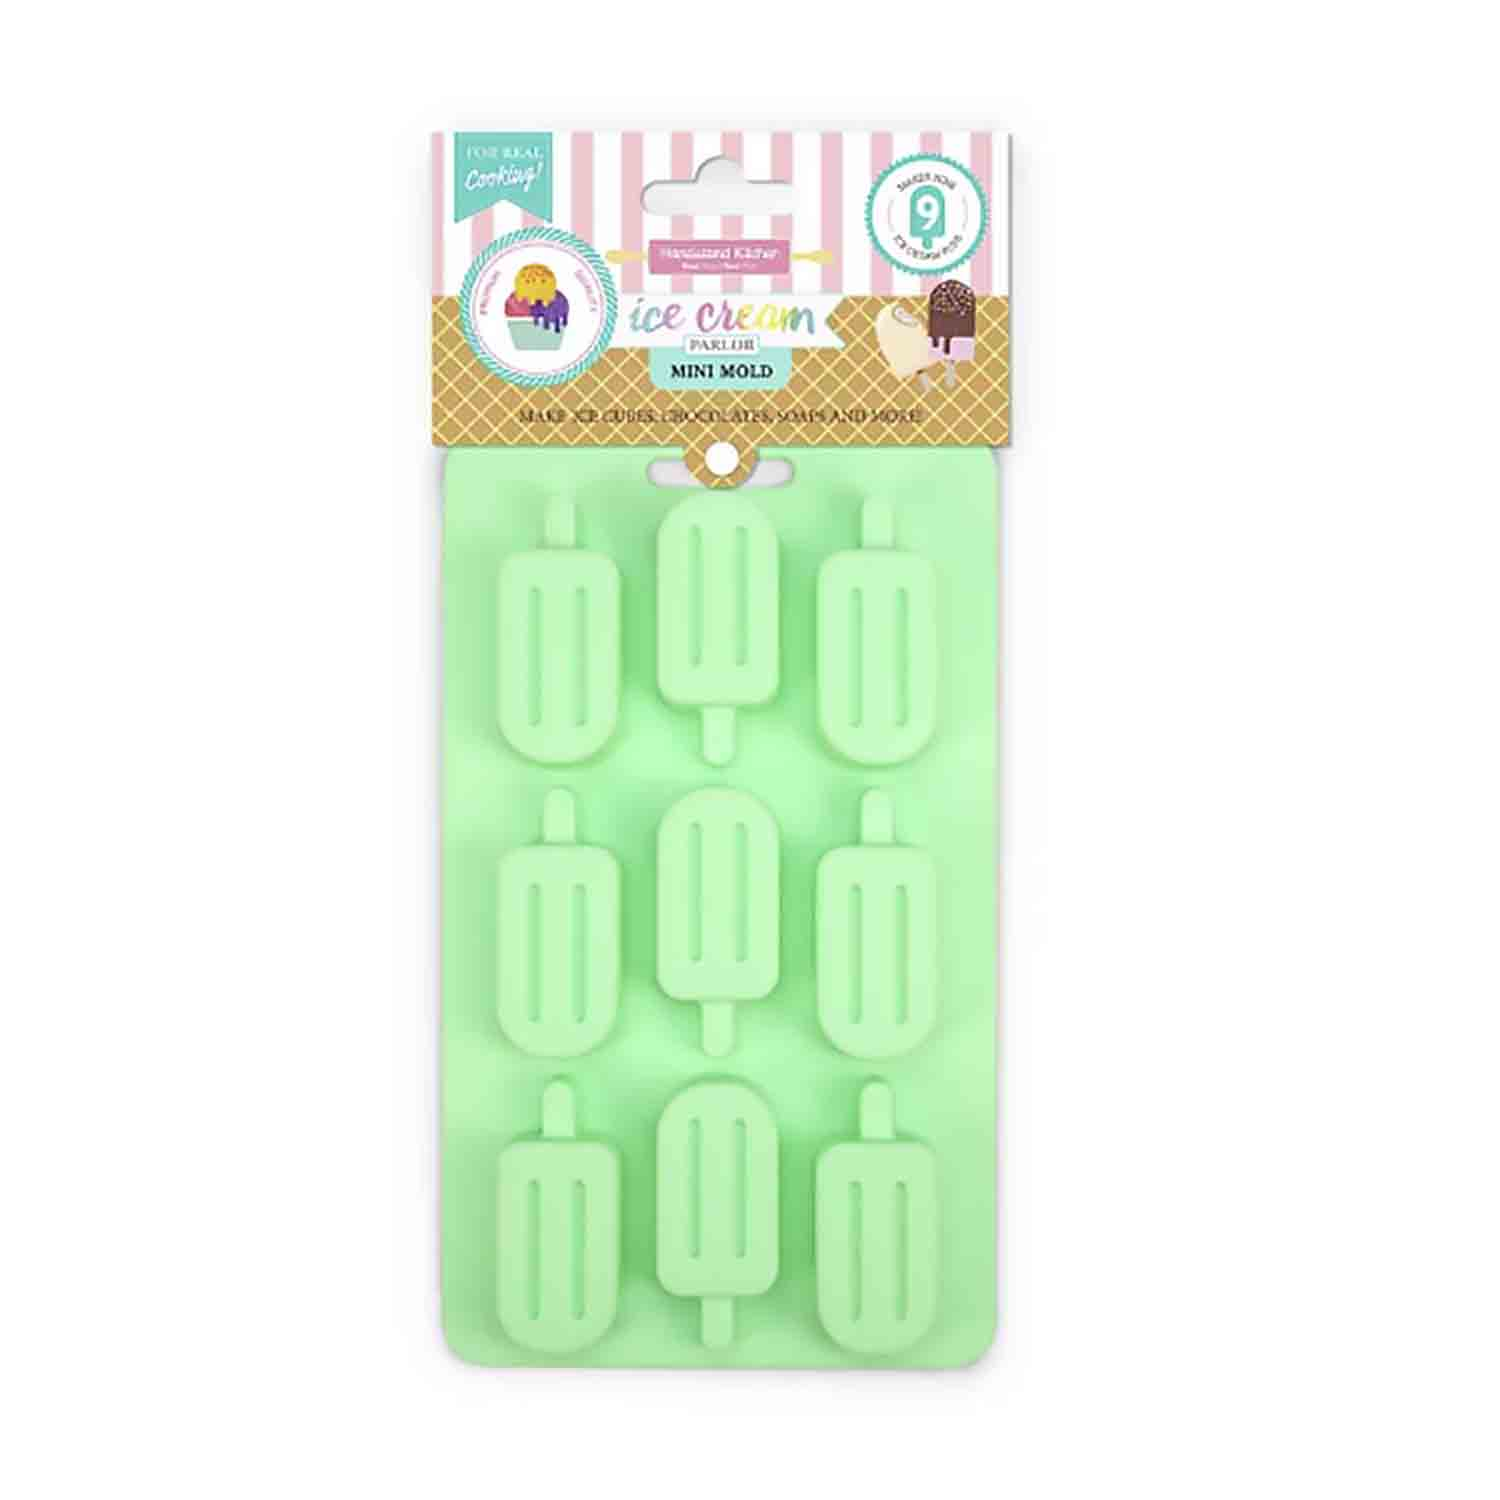 Mini Popsicle Cupcake Mold